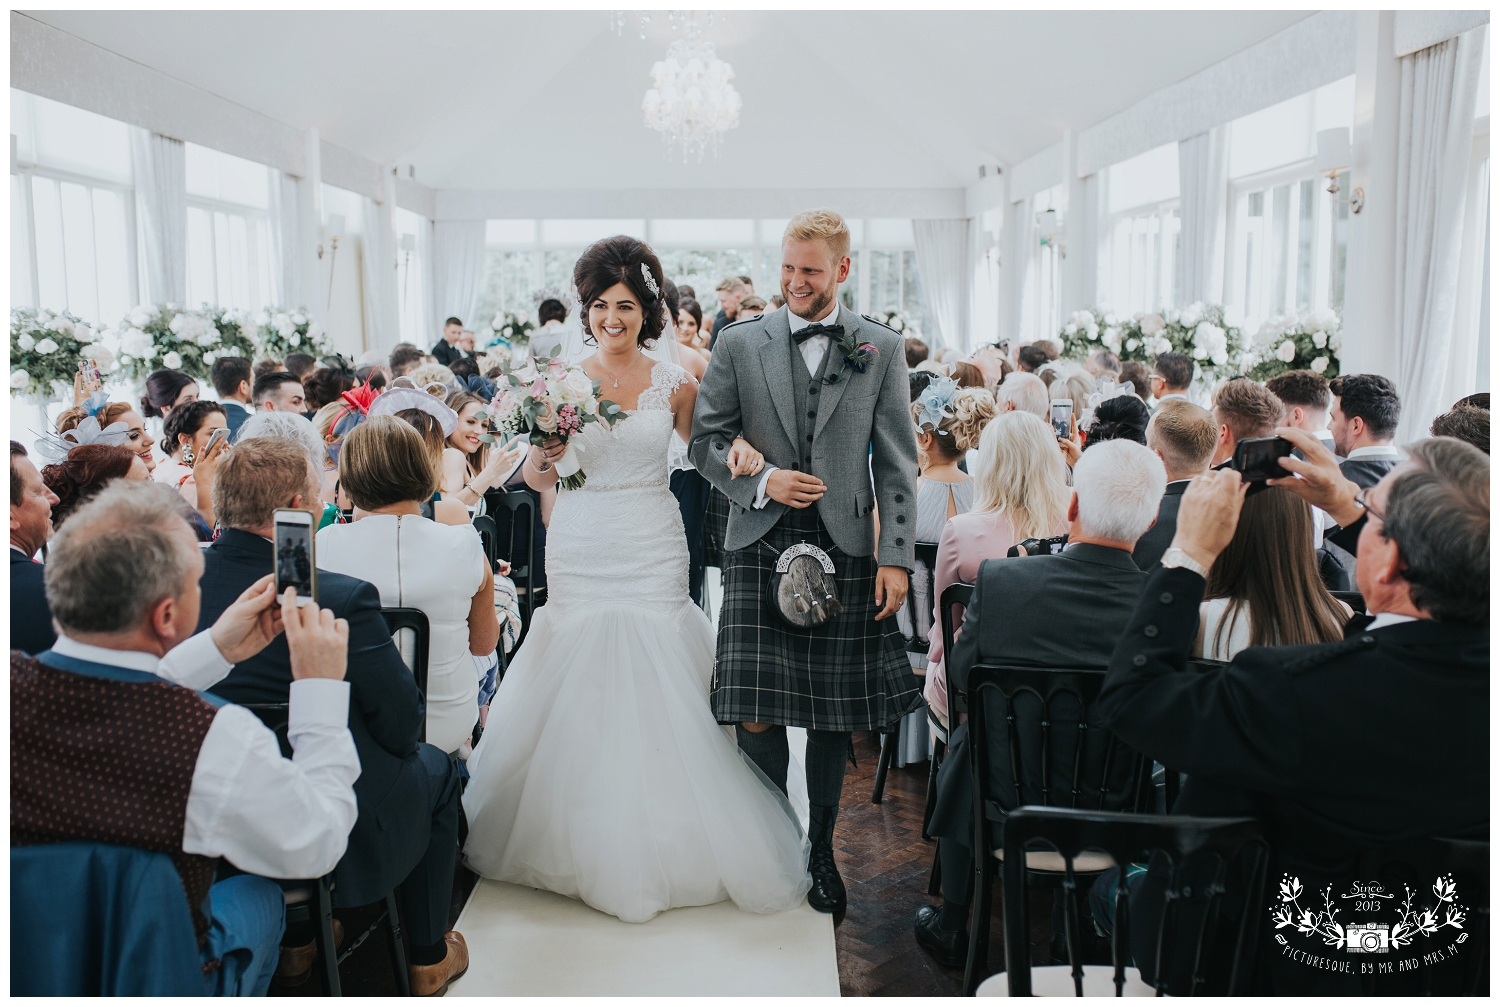 Carlowrie Castle  Wedding Photography, Picturesque by Mr and Mrs M_0046.jpg